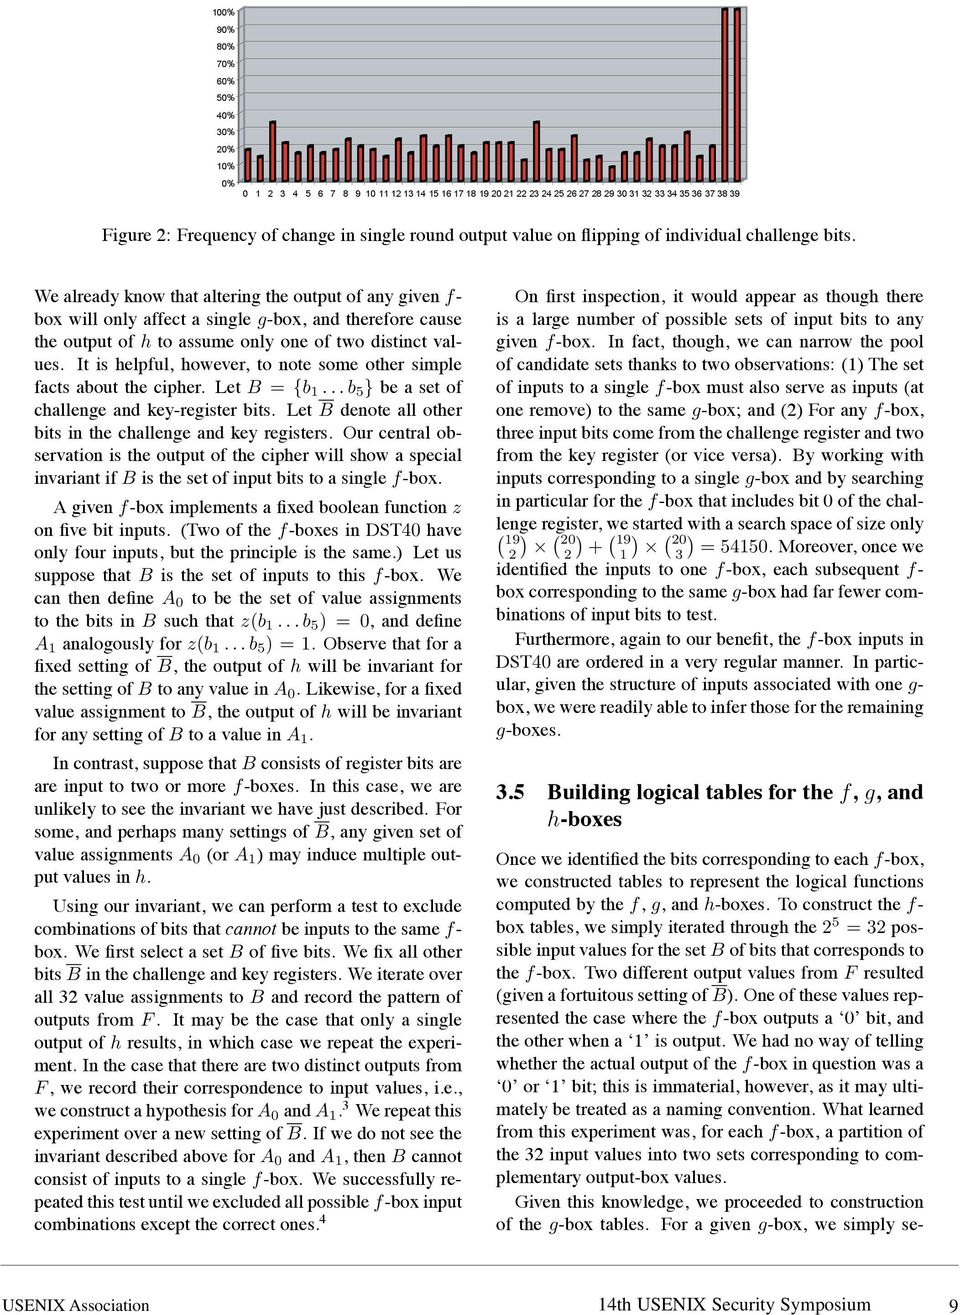 We already know that altering the output of any given f- box will only affect a single g-box, and therefore cause the output of h to assume only one of two distinct values.